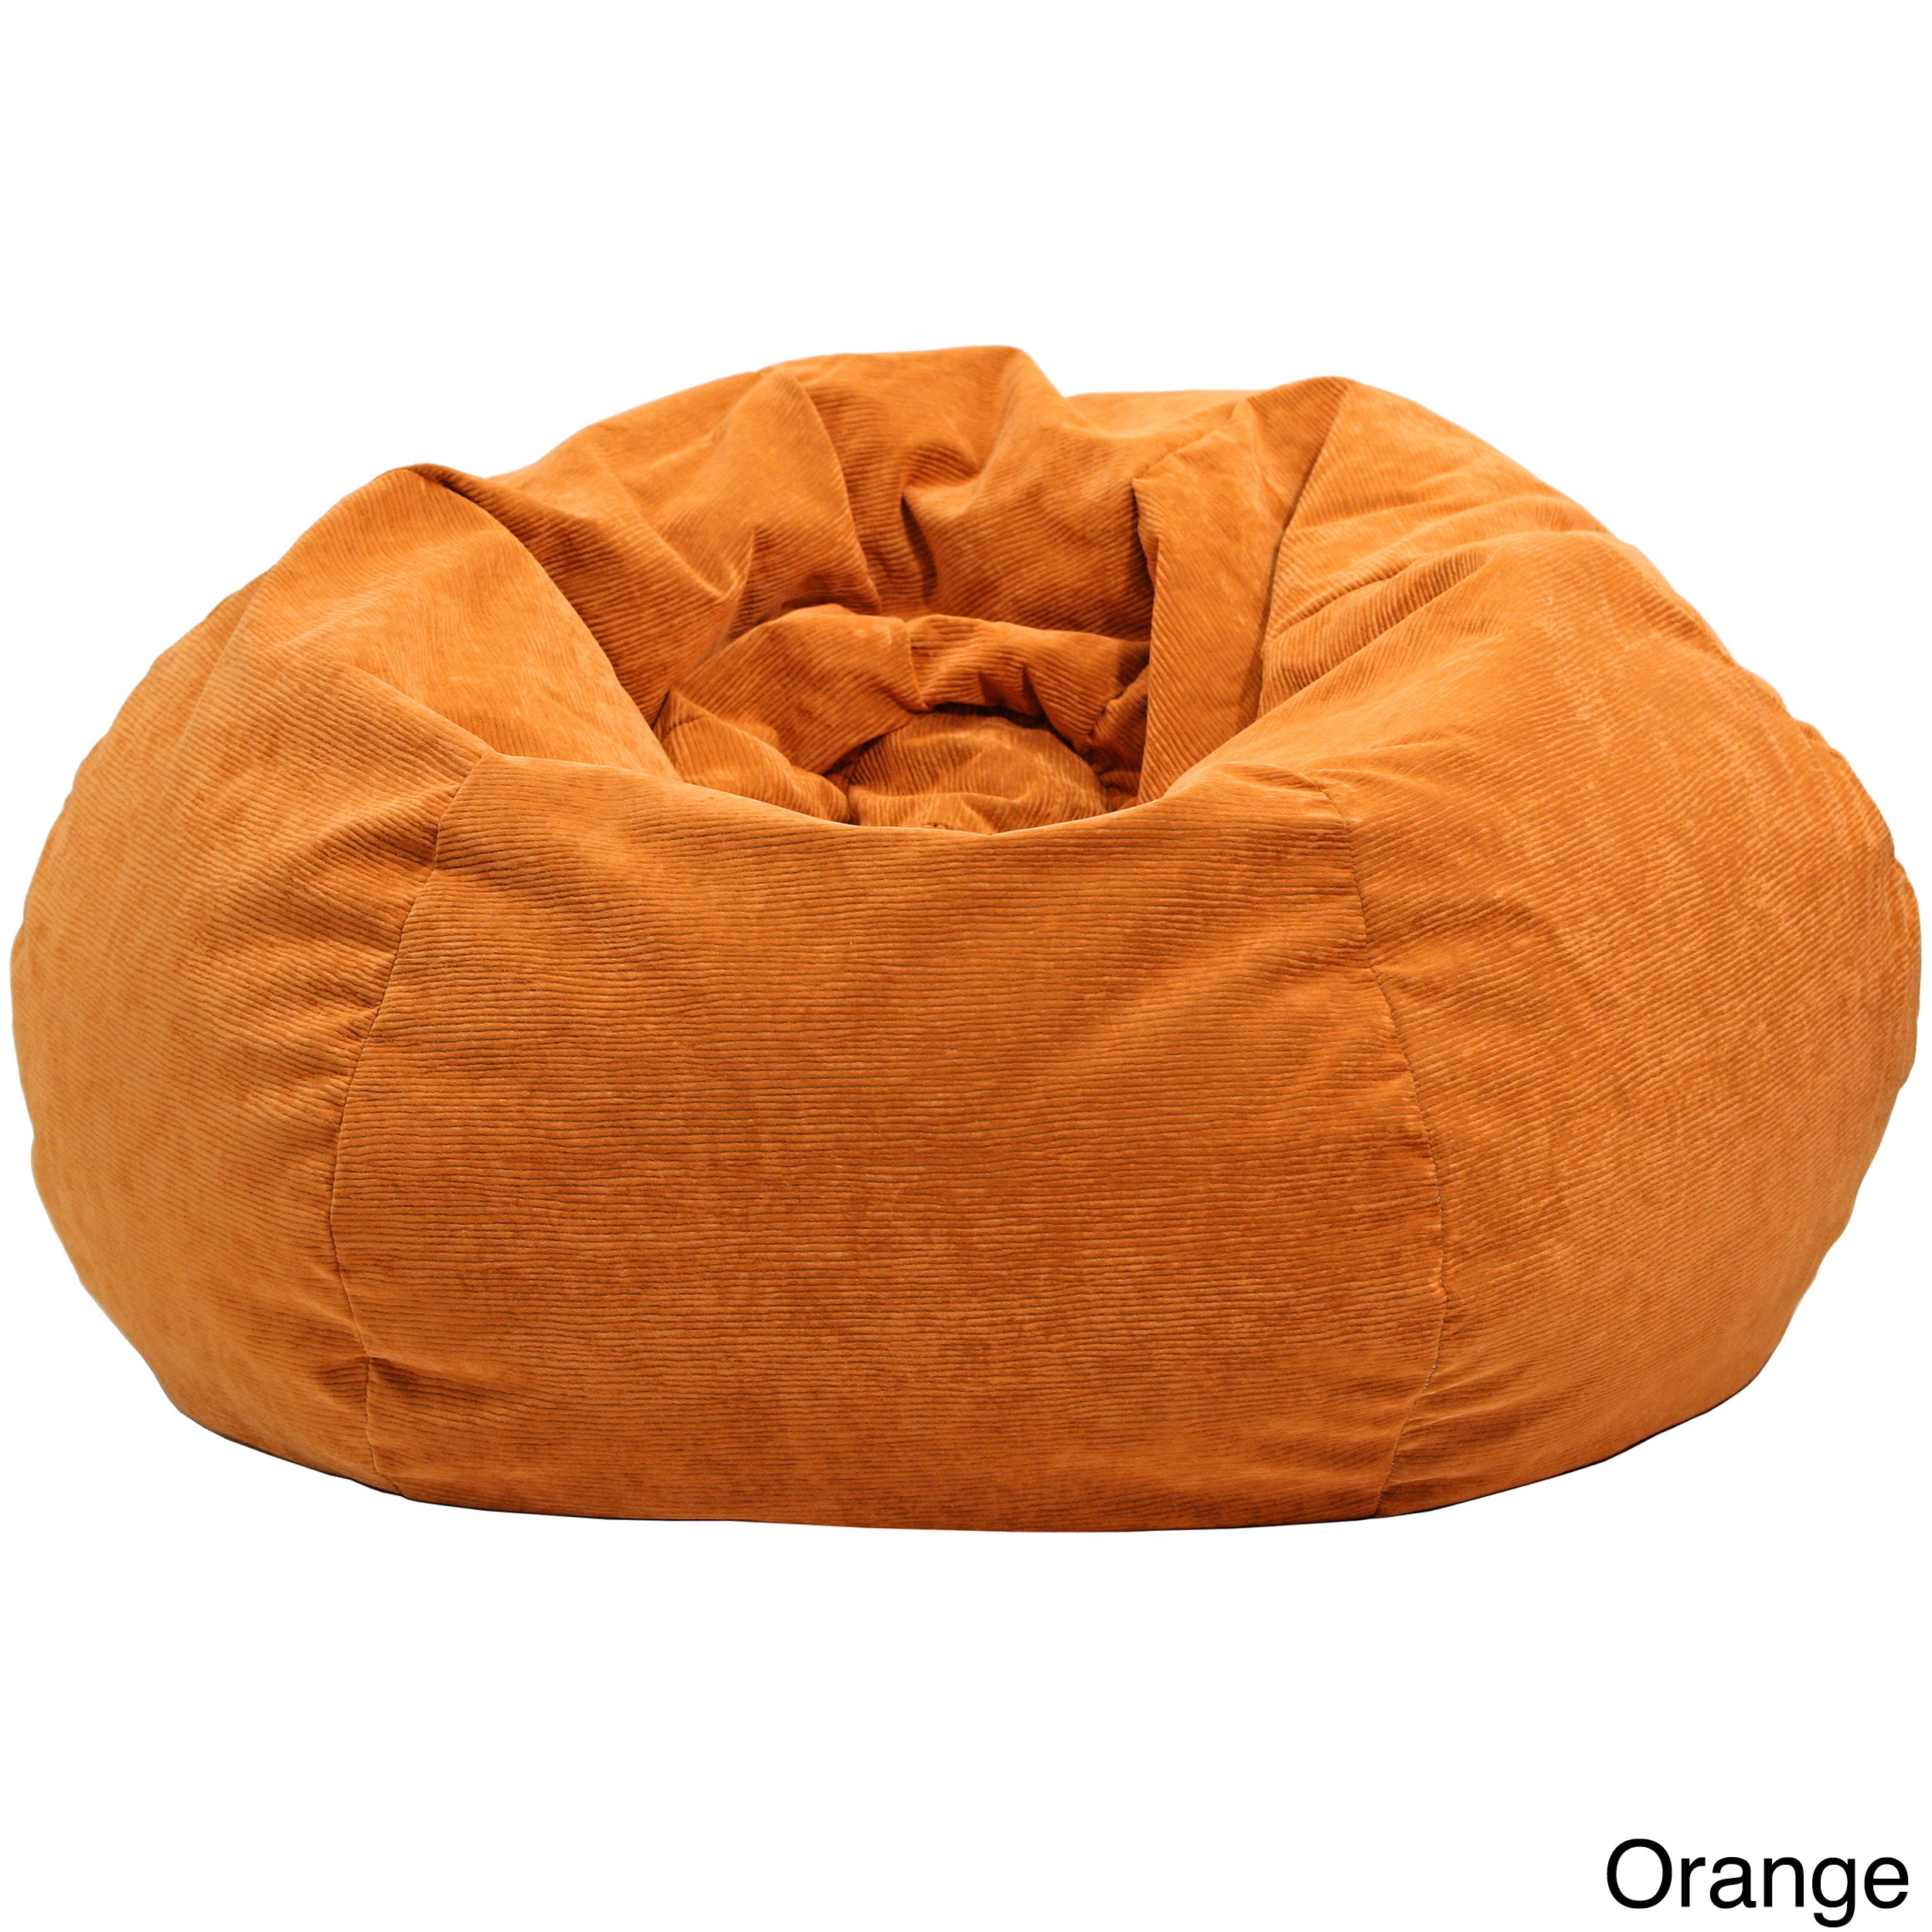 Orange Bean Bag Chairs Online At Our Best Living Room Furniture Deals